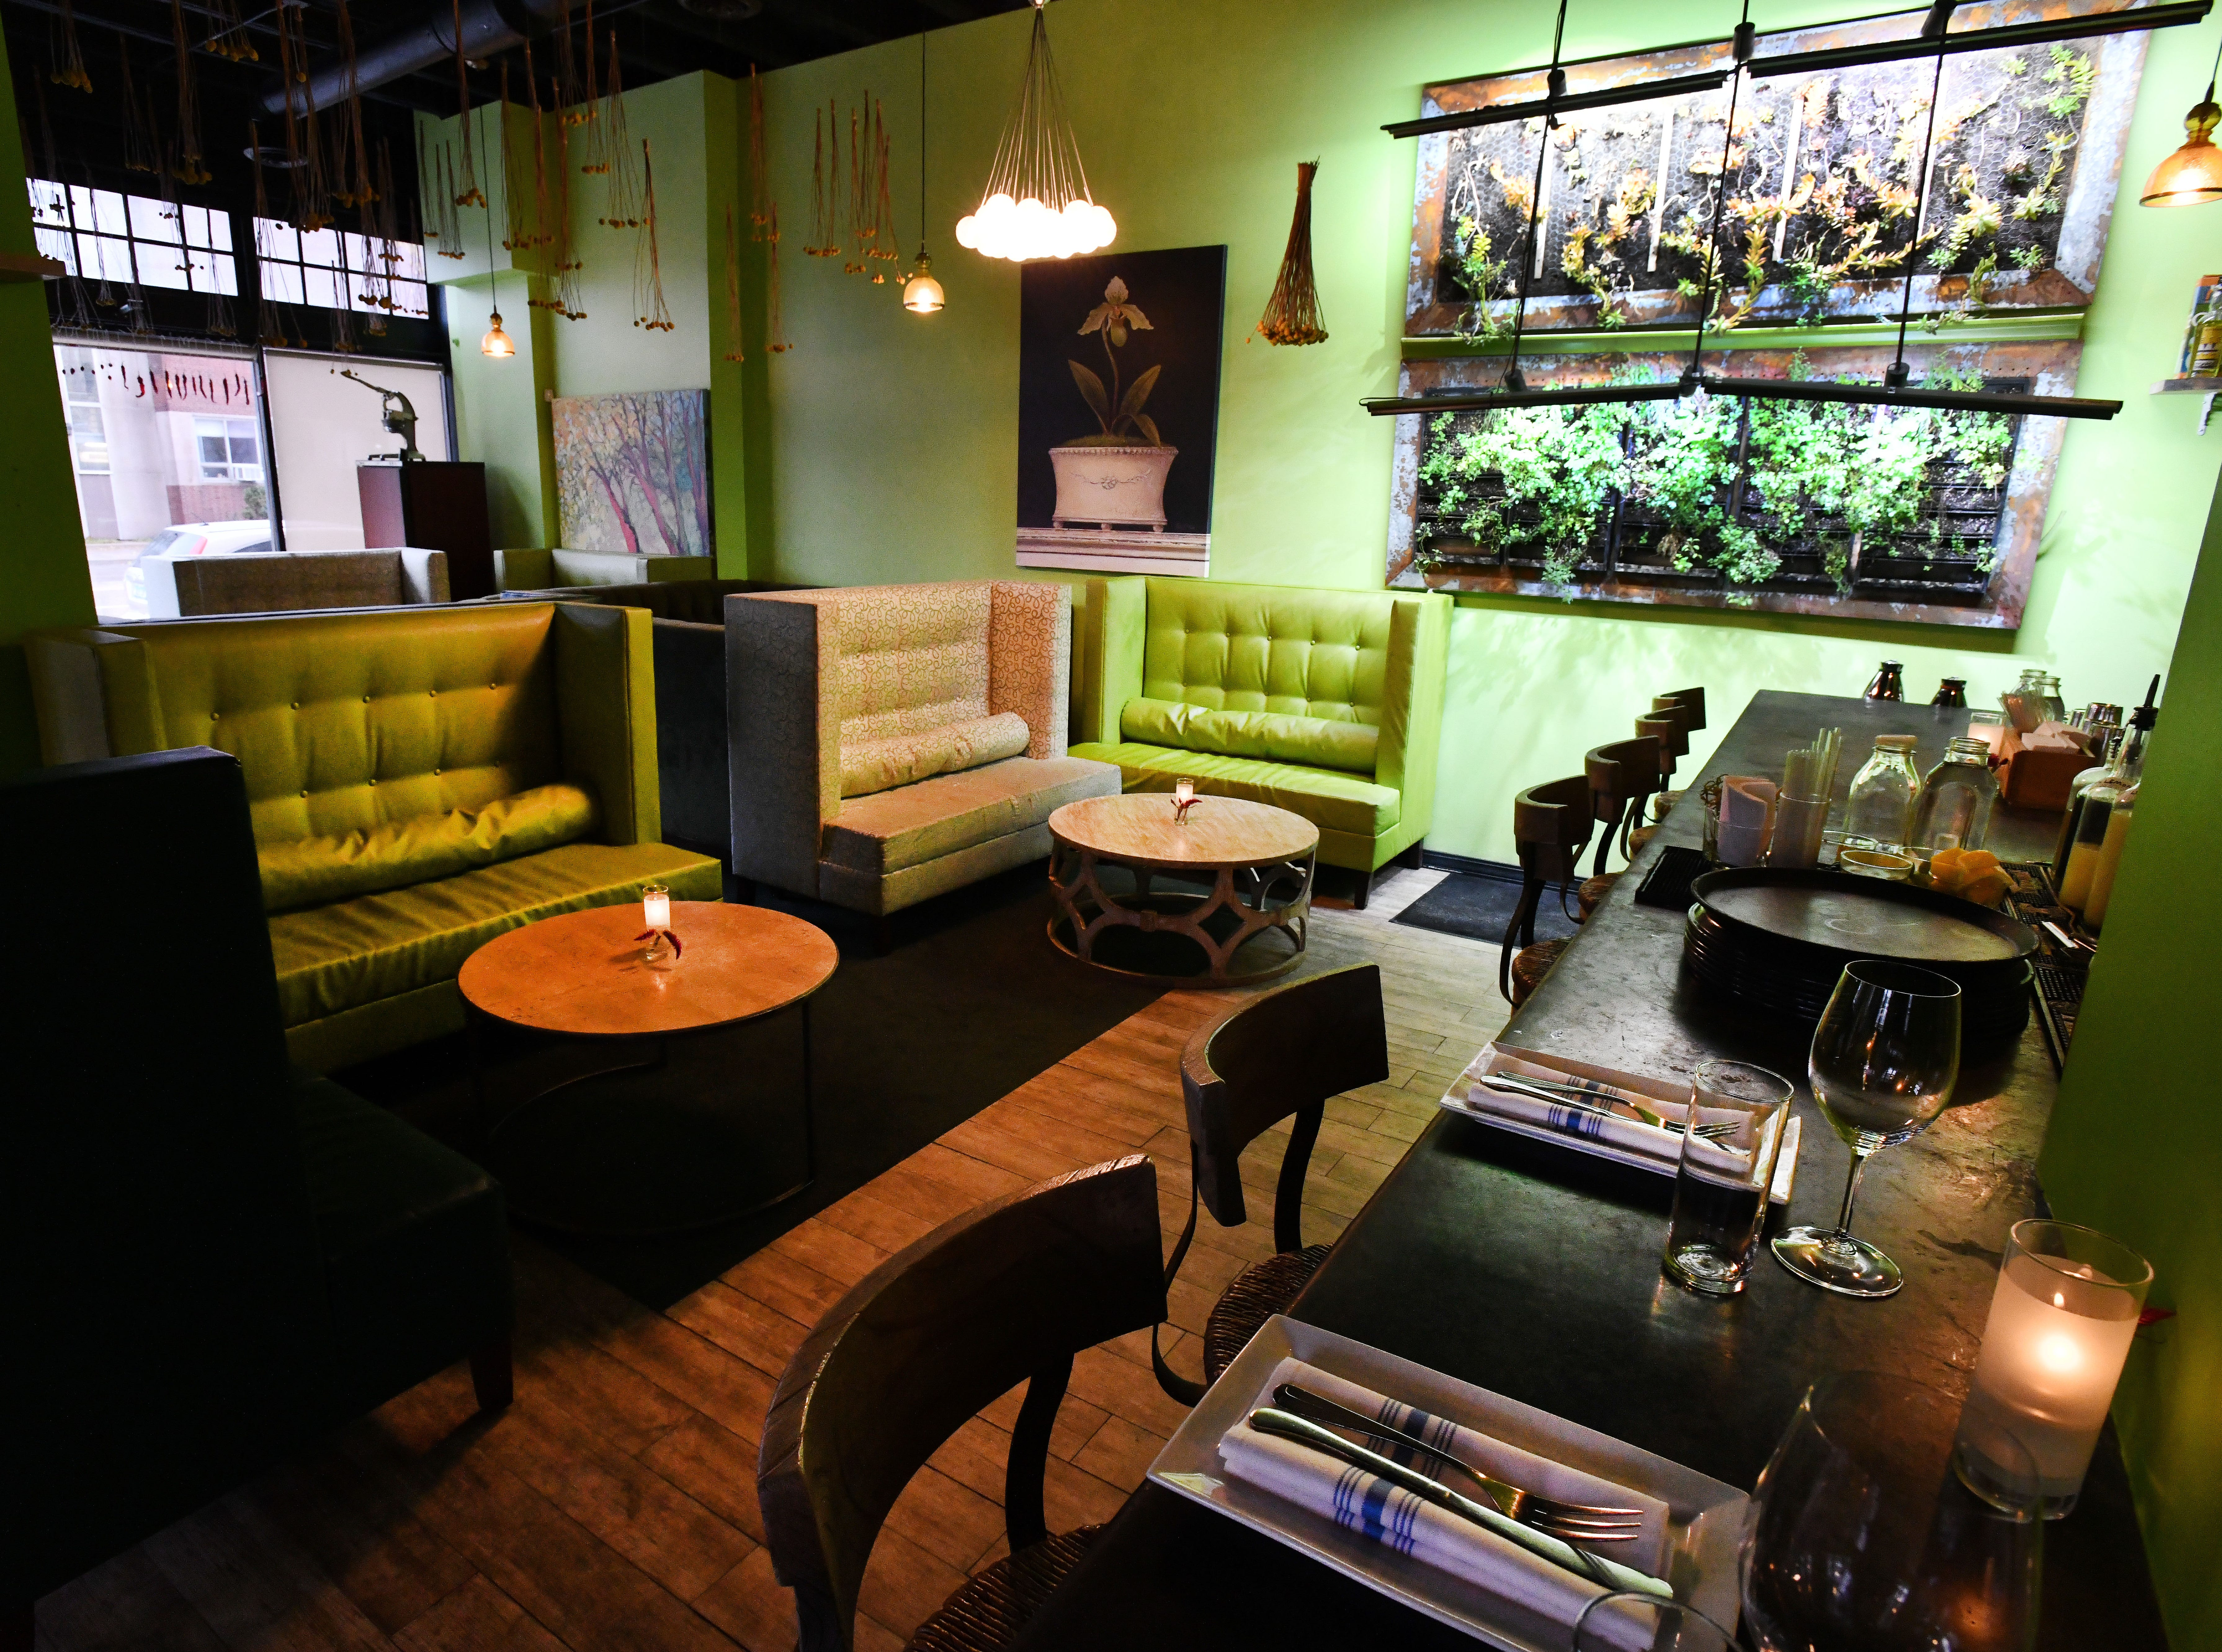 A seating area along side the bar with a wall garden.